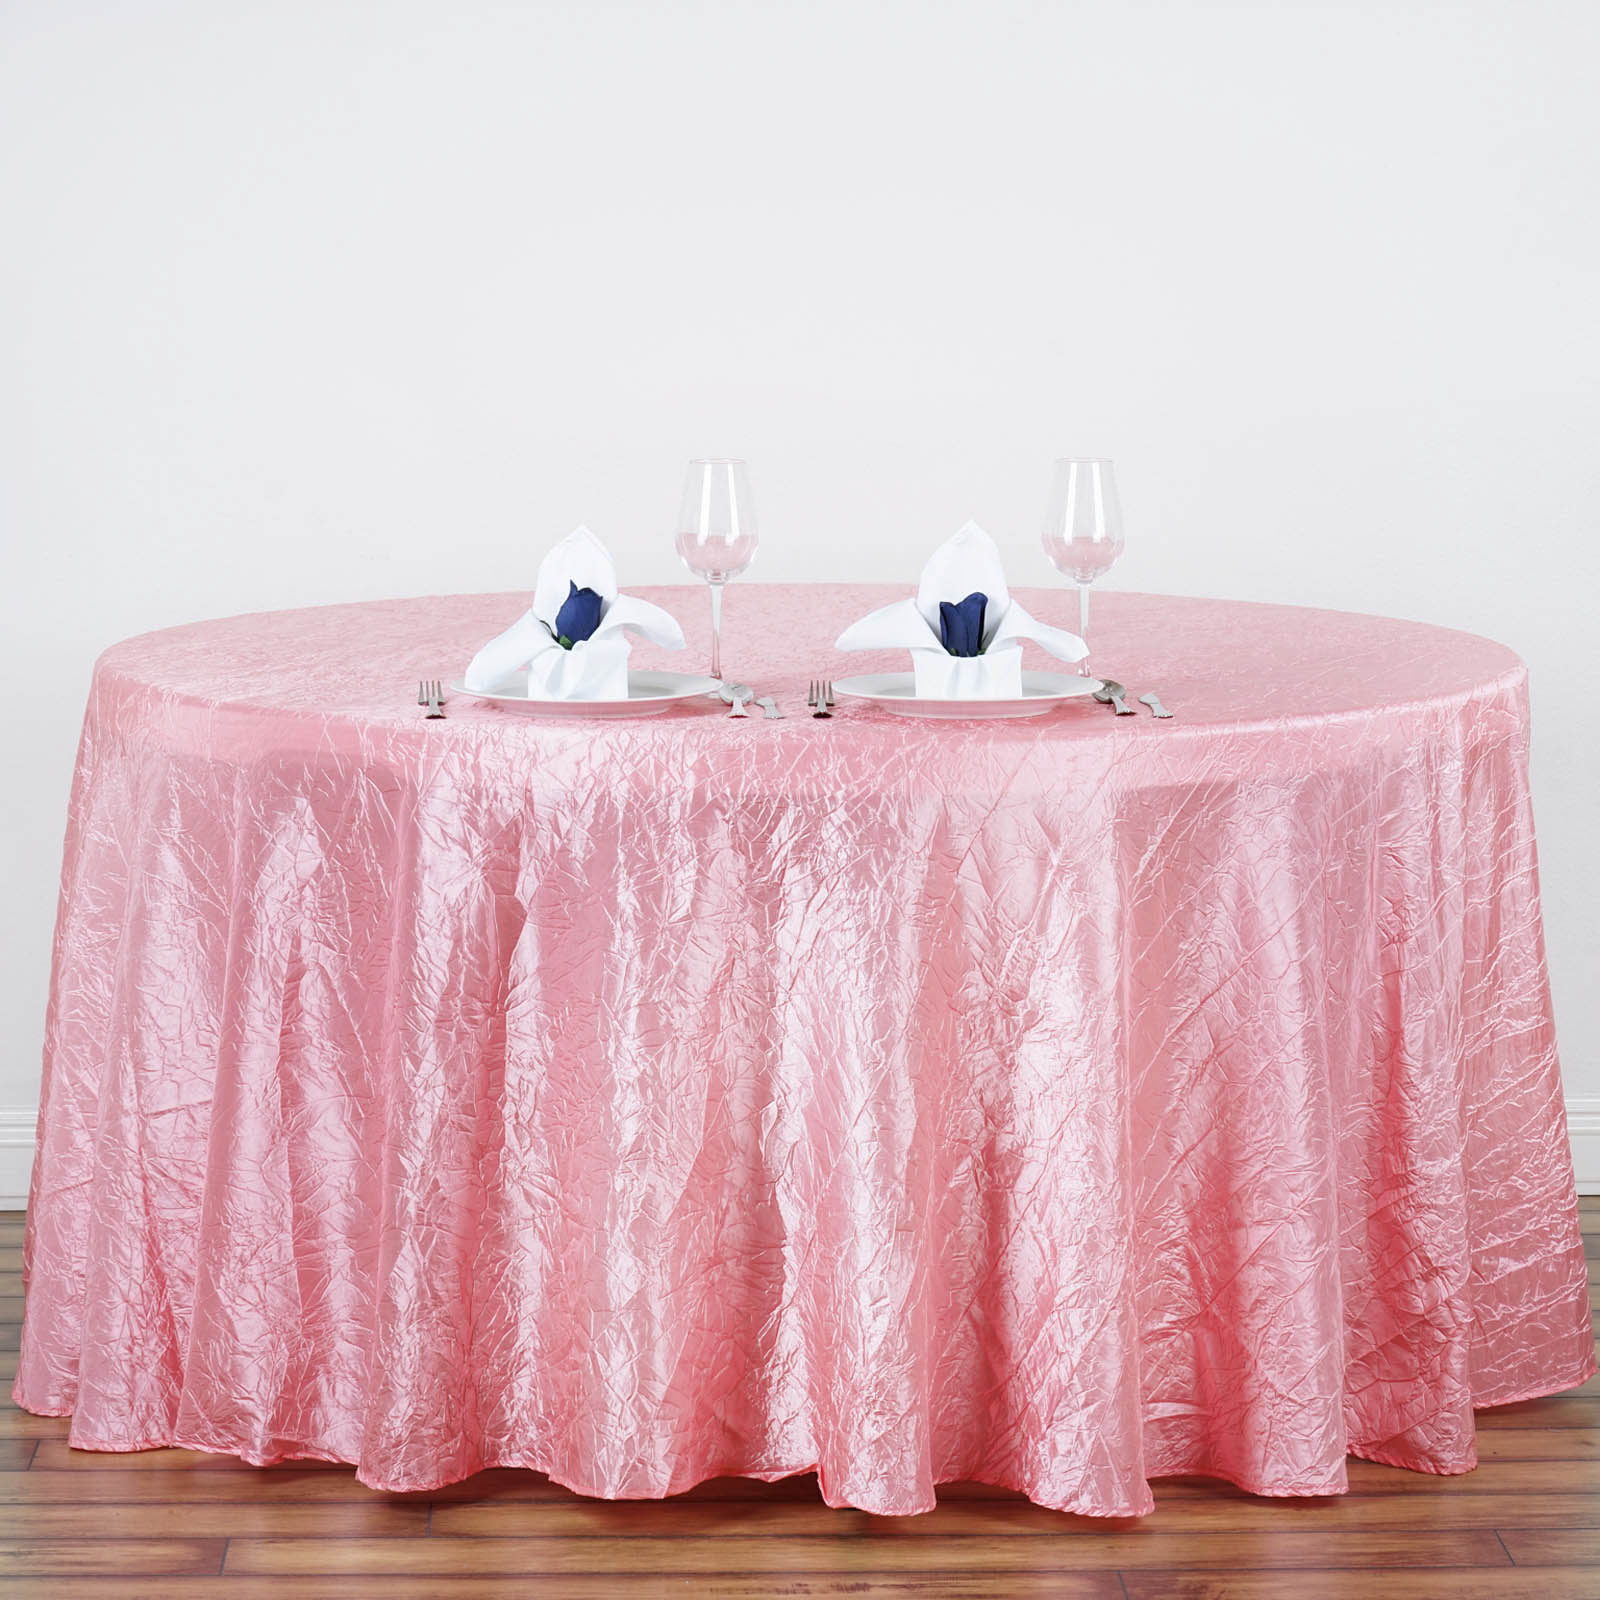 "Efavormart 117"" Crinkle Taffeta Round Tablecloth for Kitchen Dining Catering Wedding Birthday Party Decorations Events"